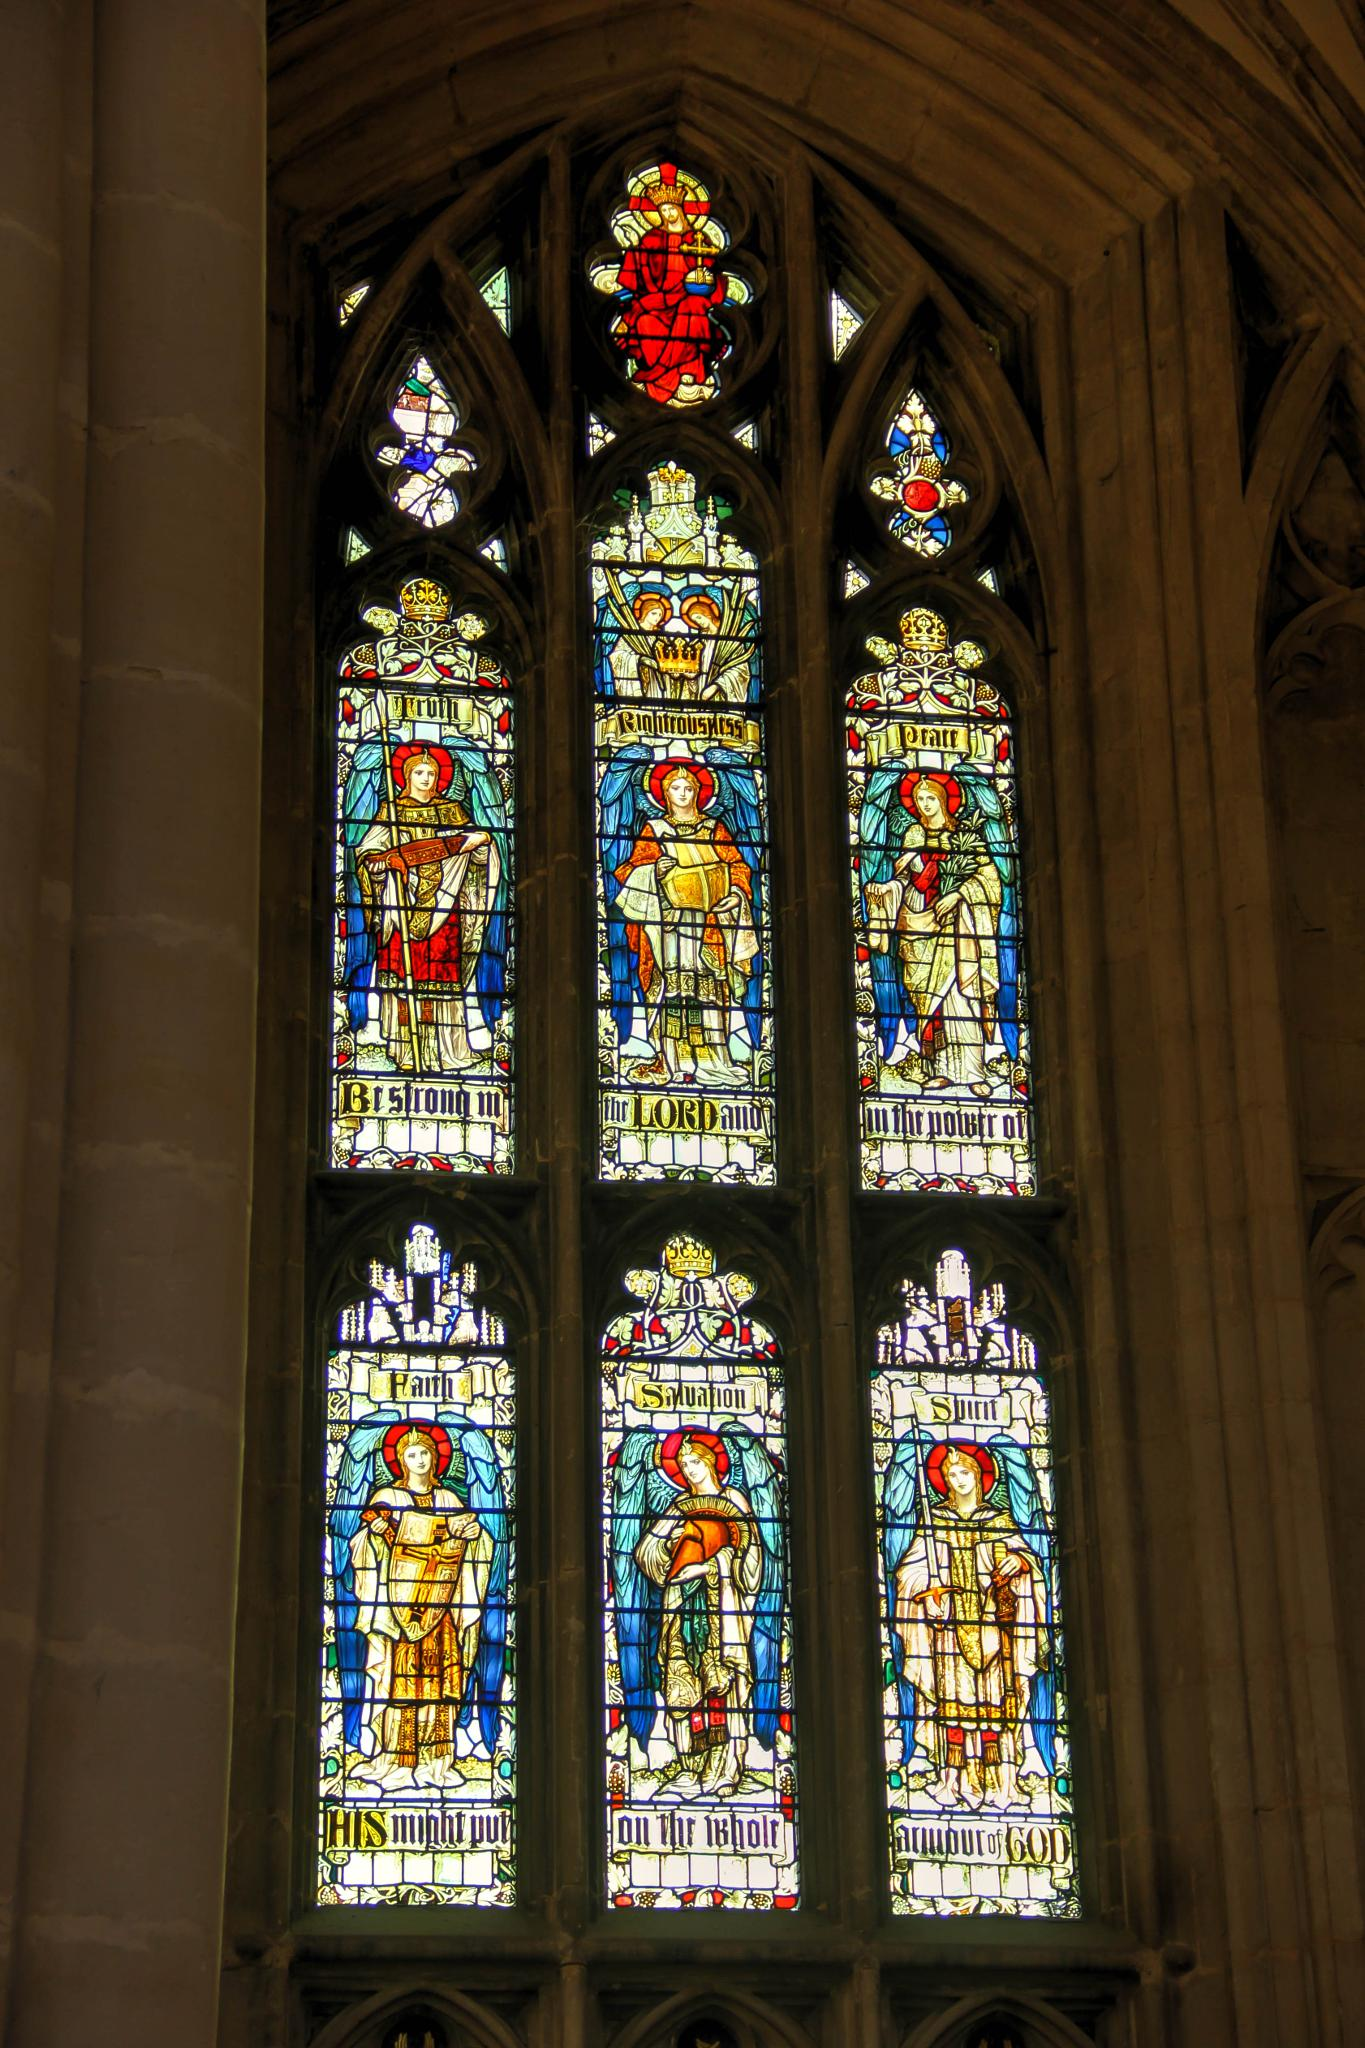 One of many stained glass windows at Winchester cathedral by Peggy Berger